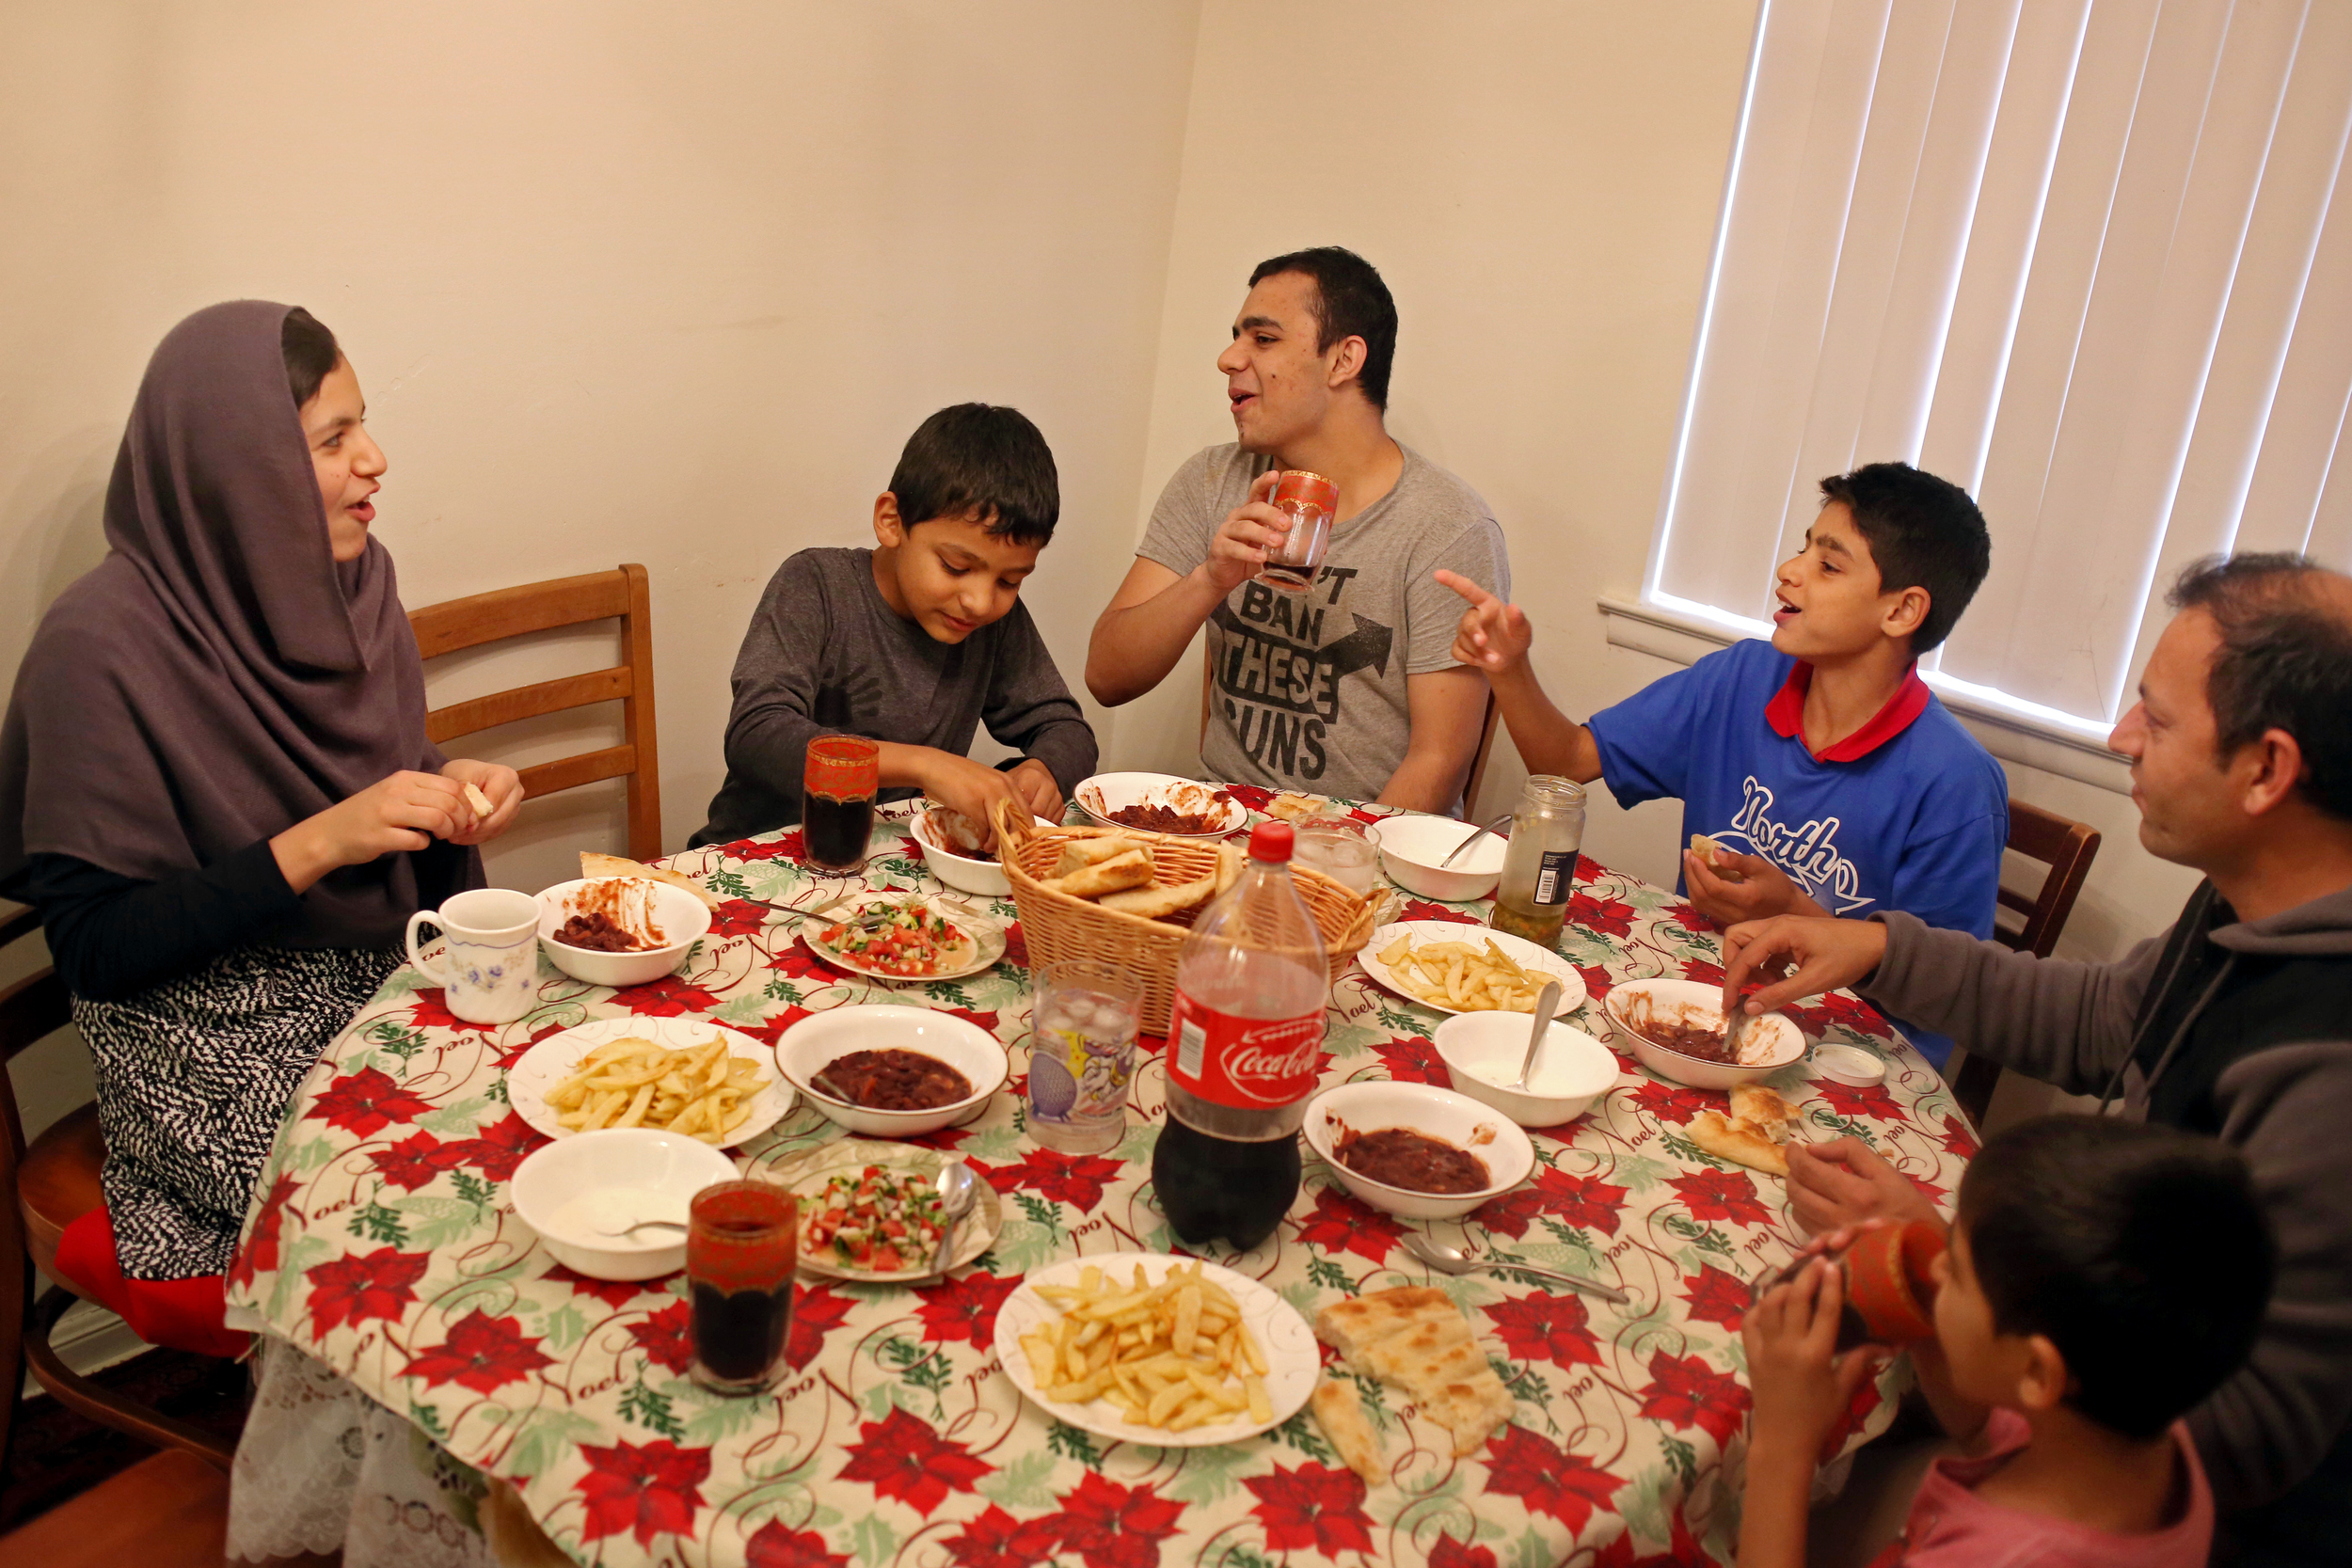 From left to right, Khatera, 13, Kawoon, 8, Basir, 17, Janan, 11, Ezatullah, 38, and Ehsanullah, 6, eat dinner together at their home in Lansing, Mich. The family uses dinner time as a way to catch each other up on the days events at school.